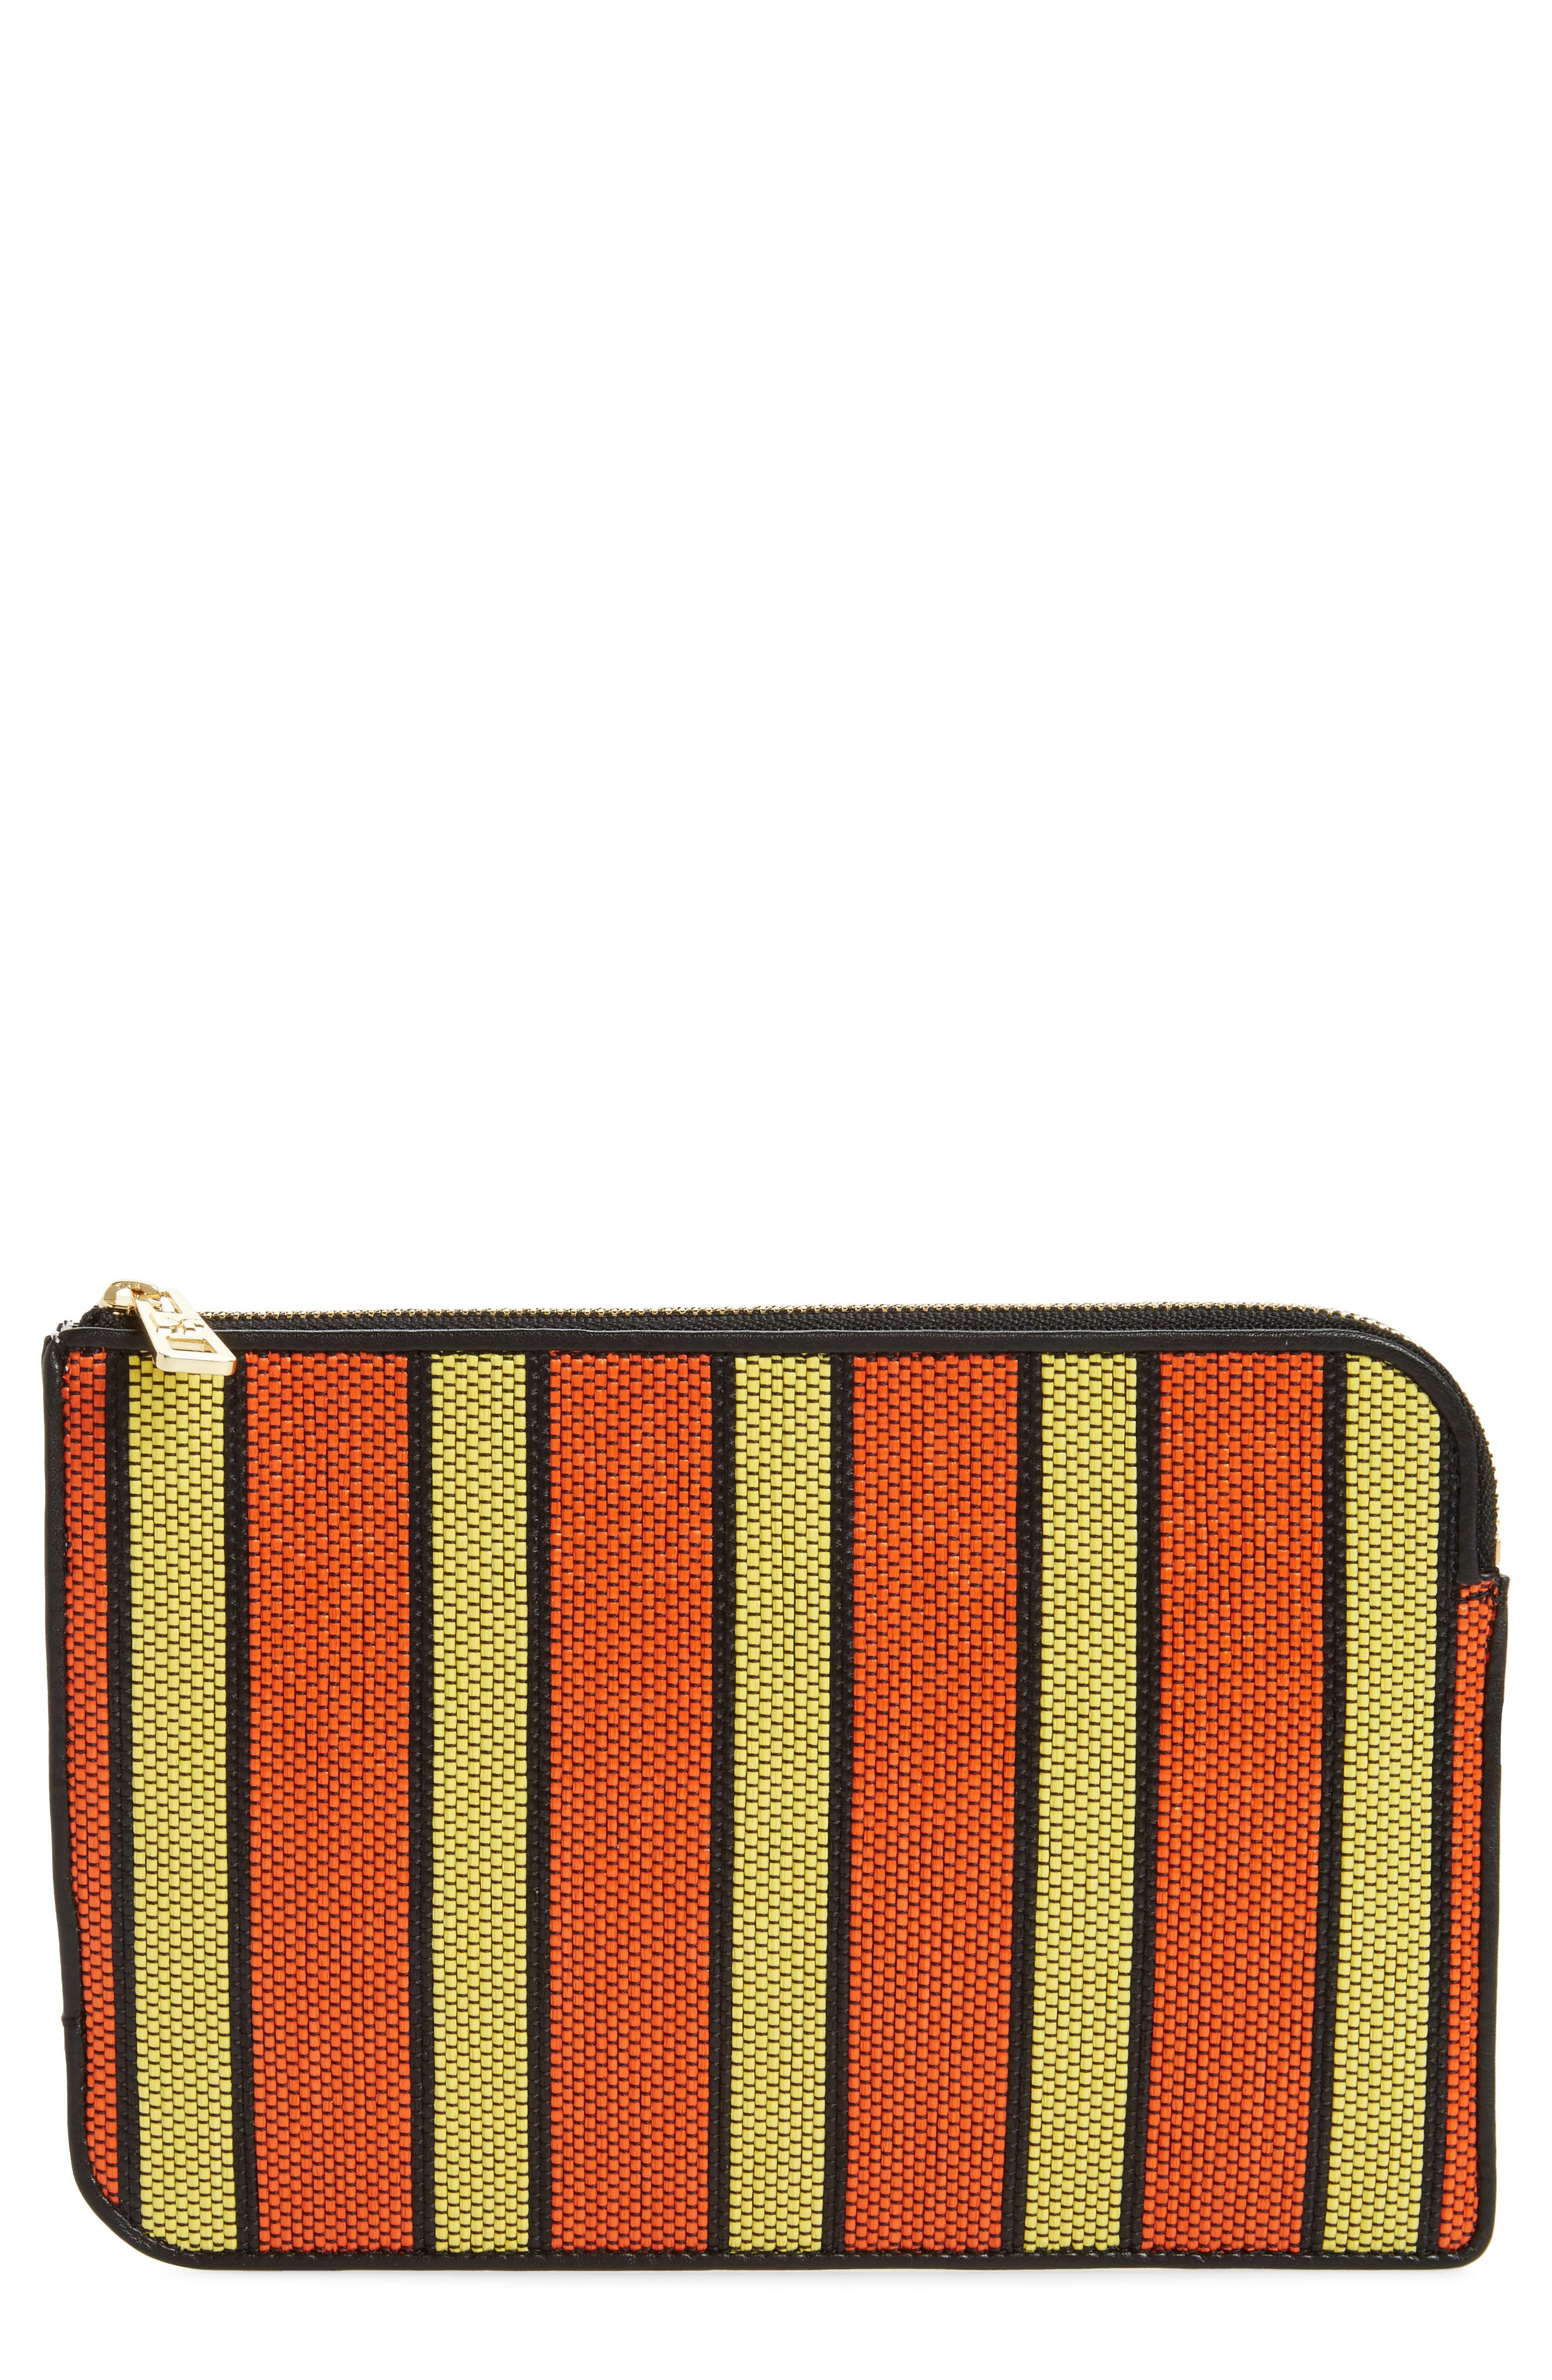 Medium Zip Pouch,                             Main thumbnail 1, color,                             800